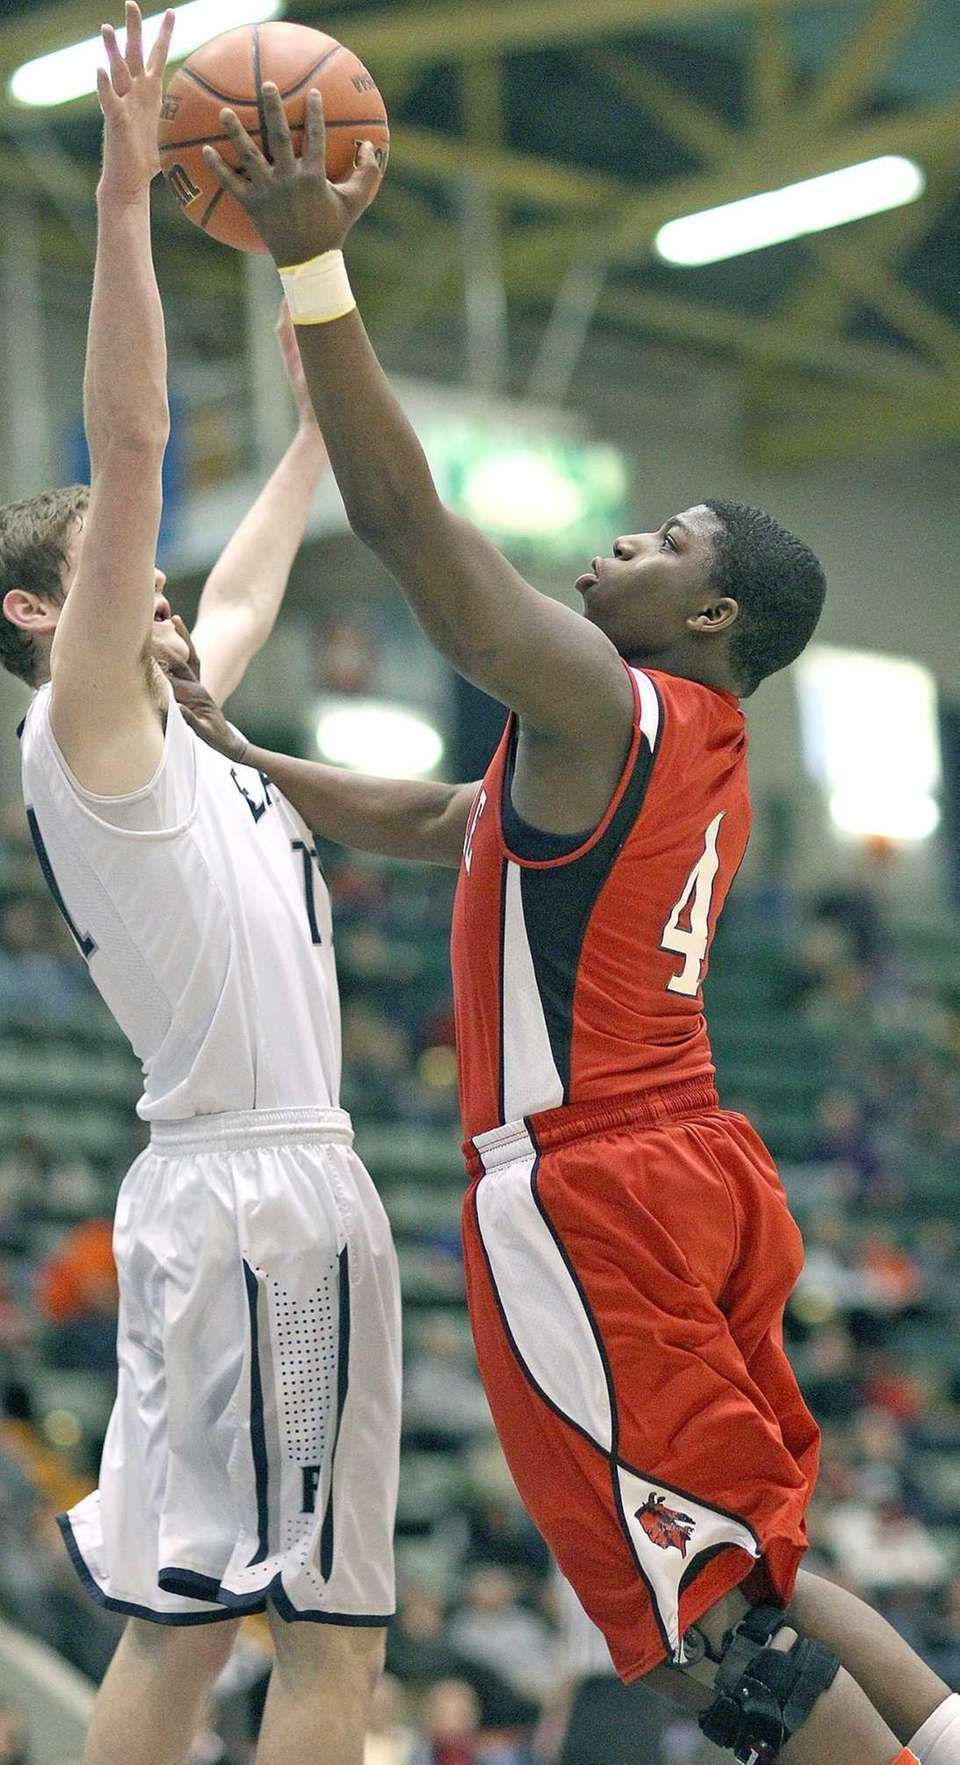 Amityville's Mike Alston goes for layup during the